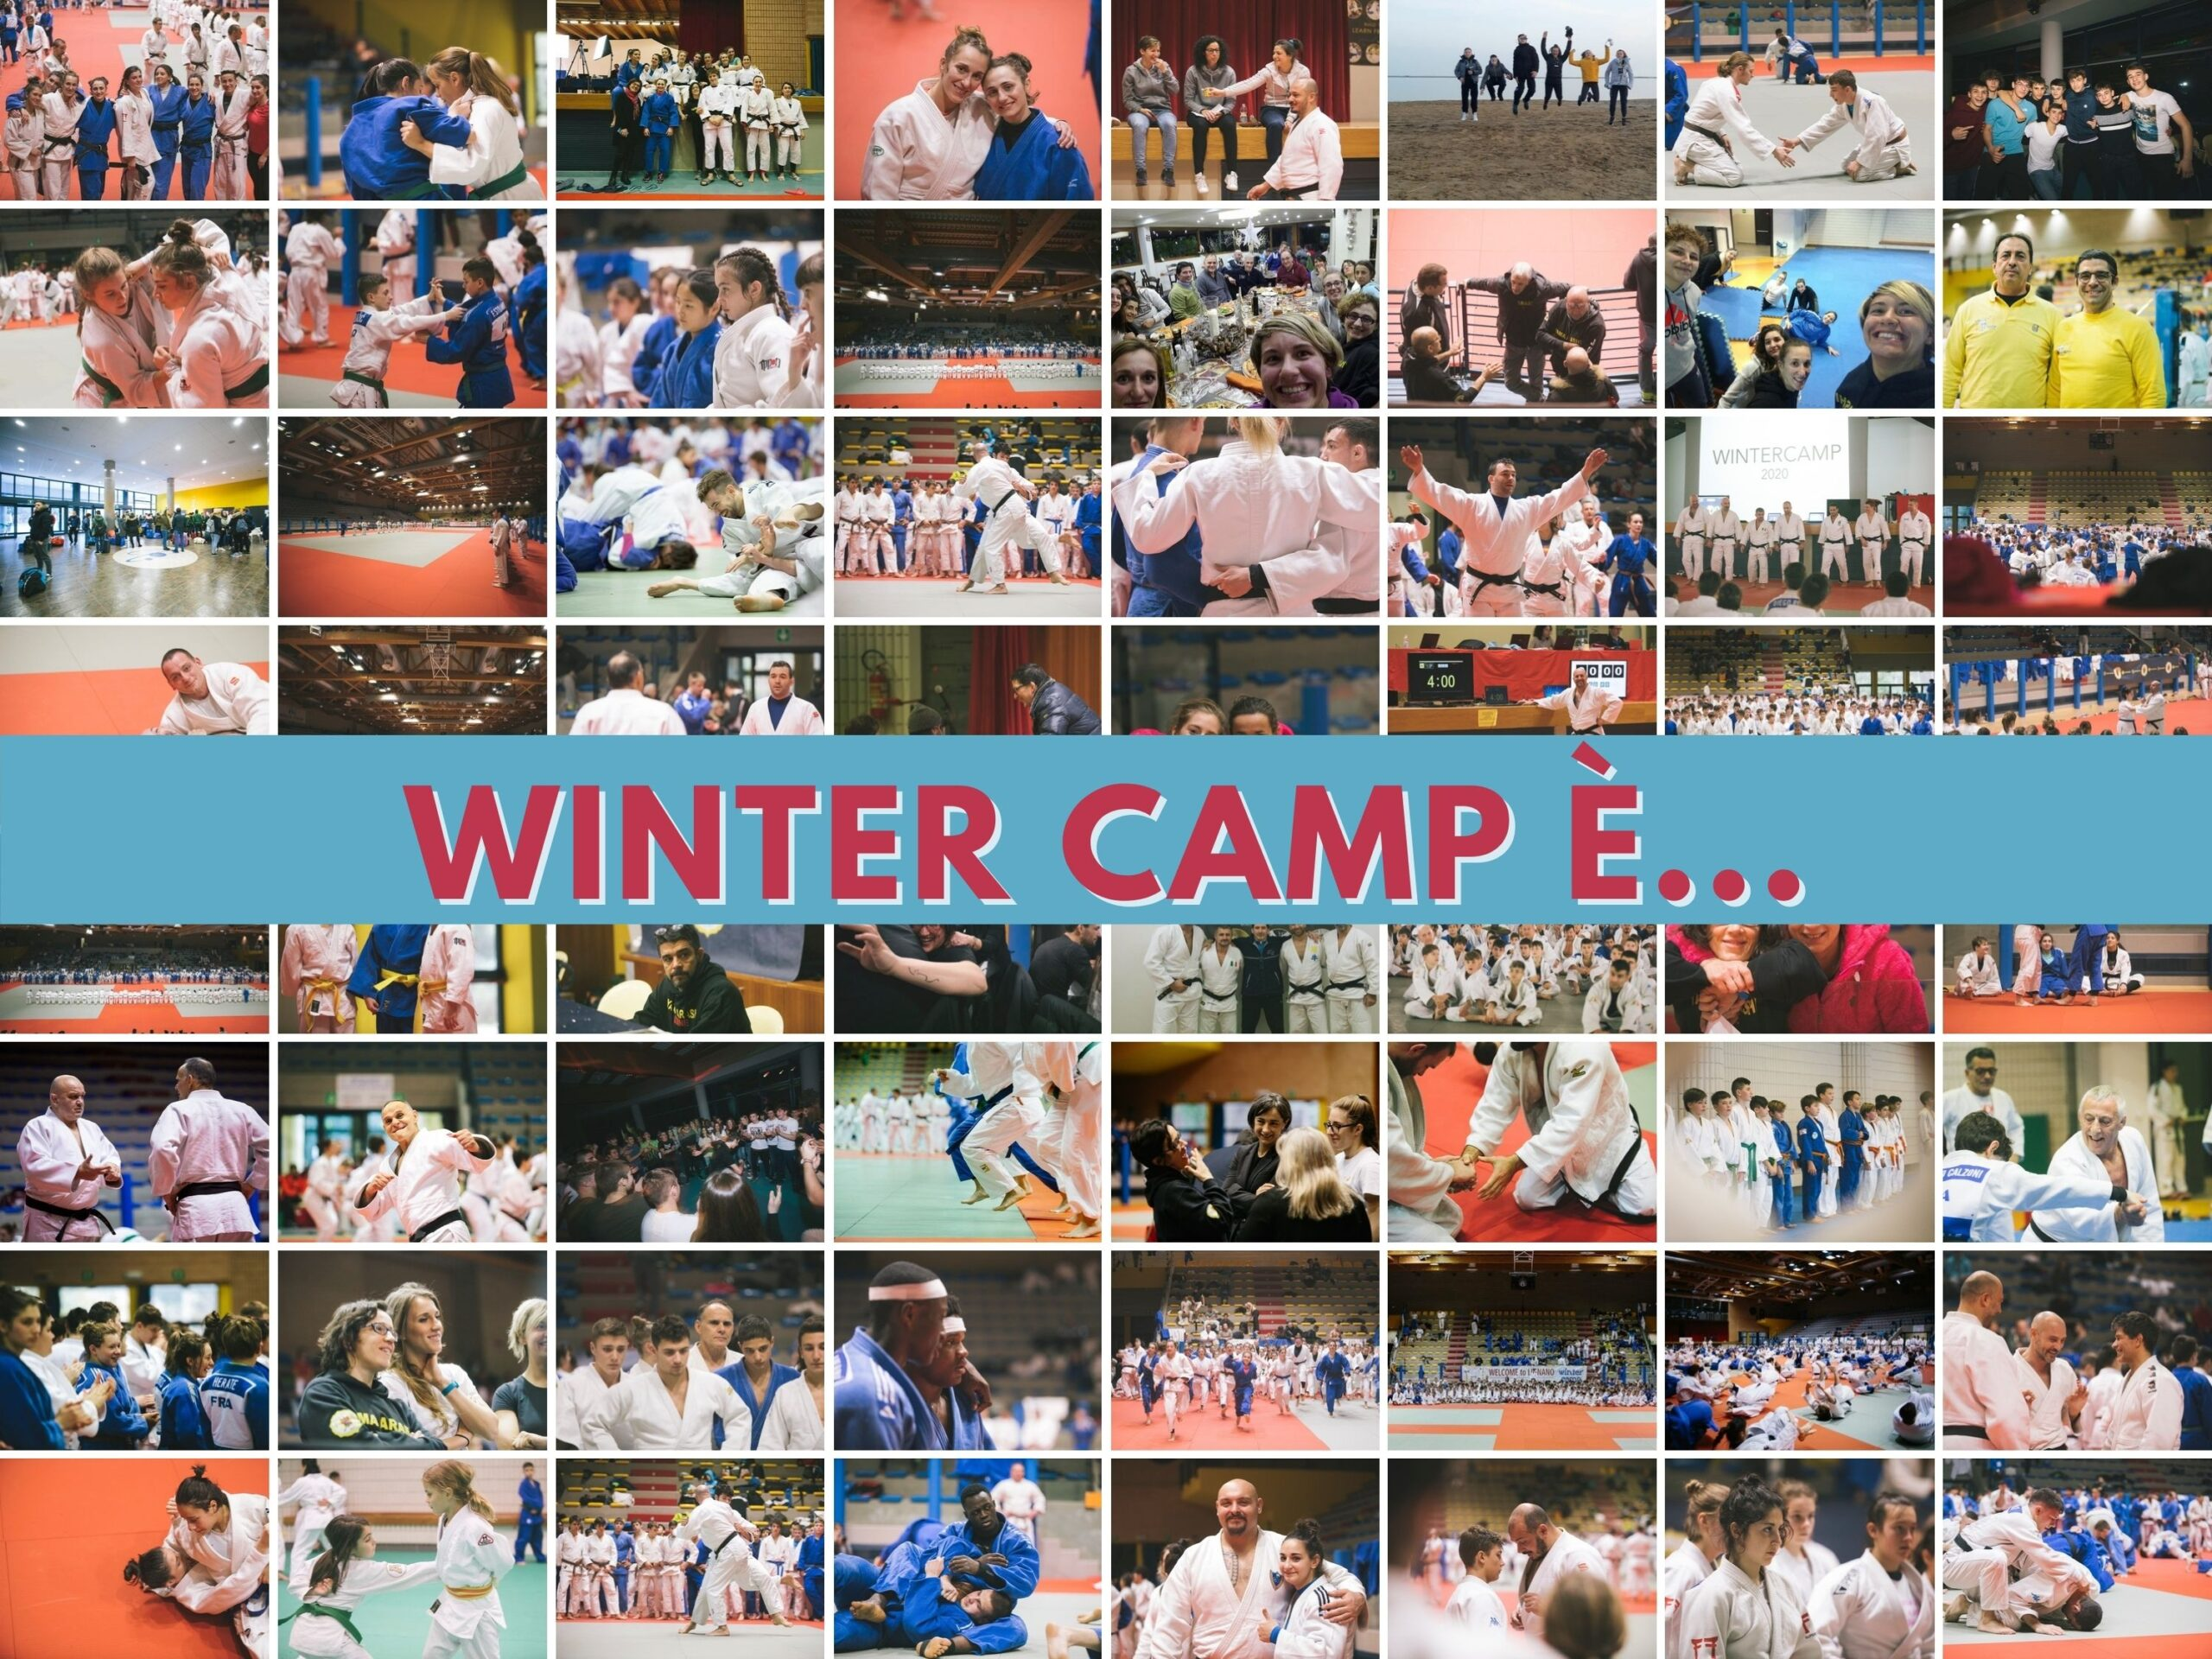 WINTER CAMP E